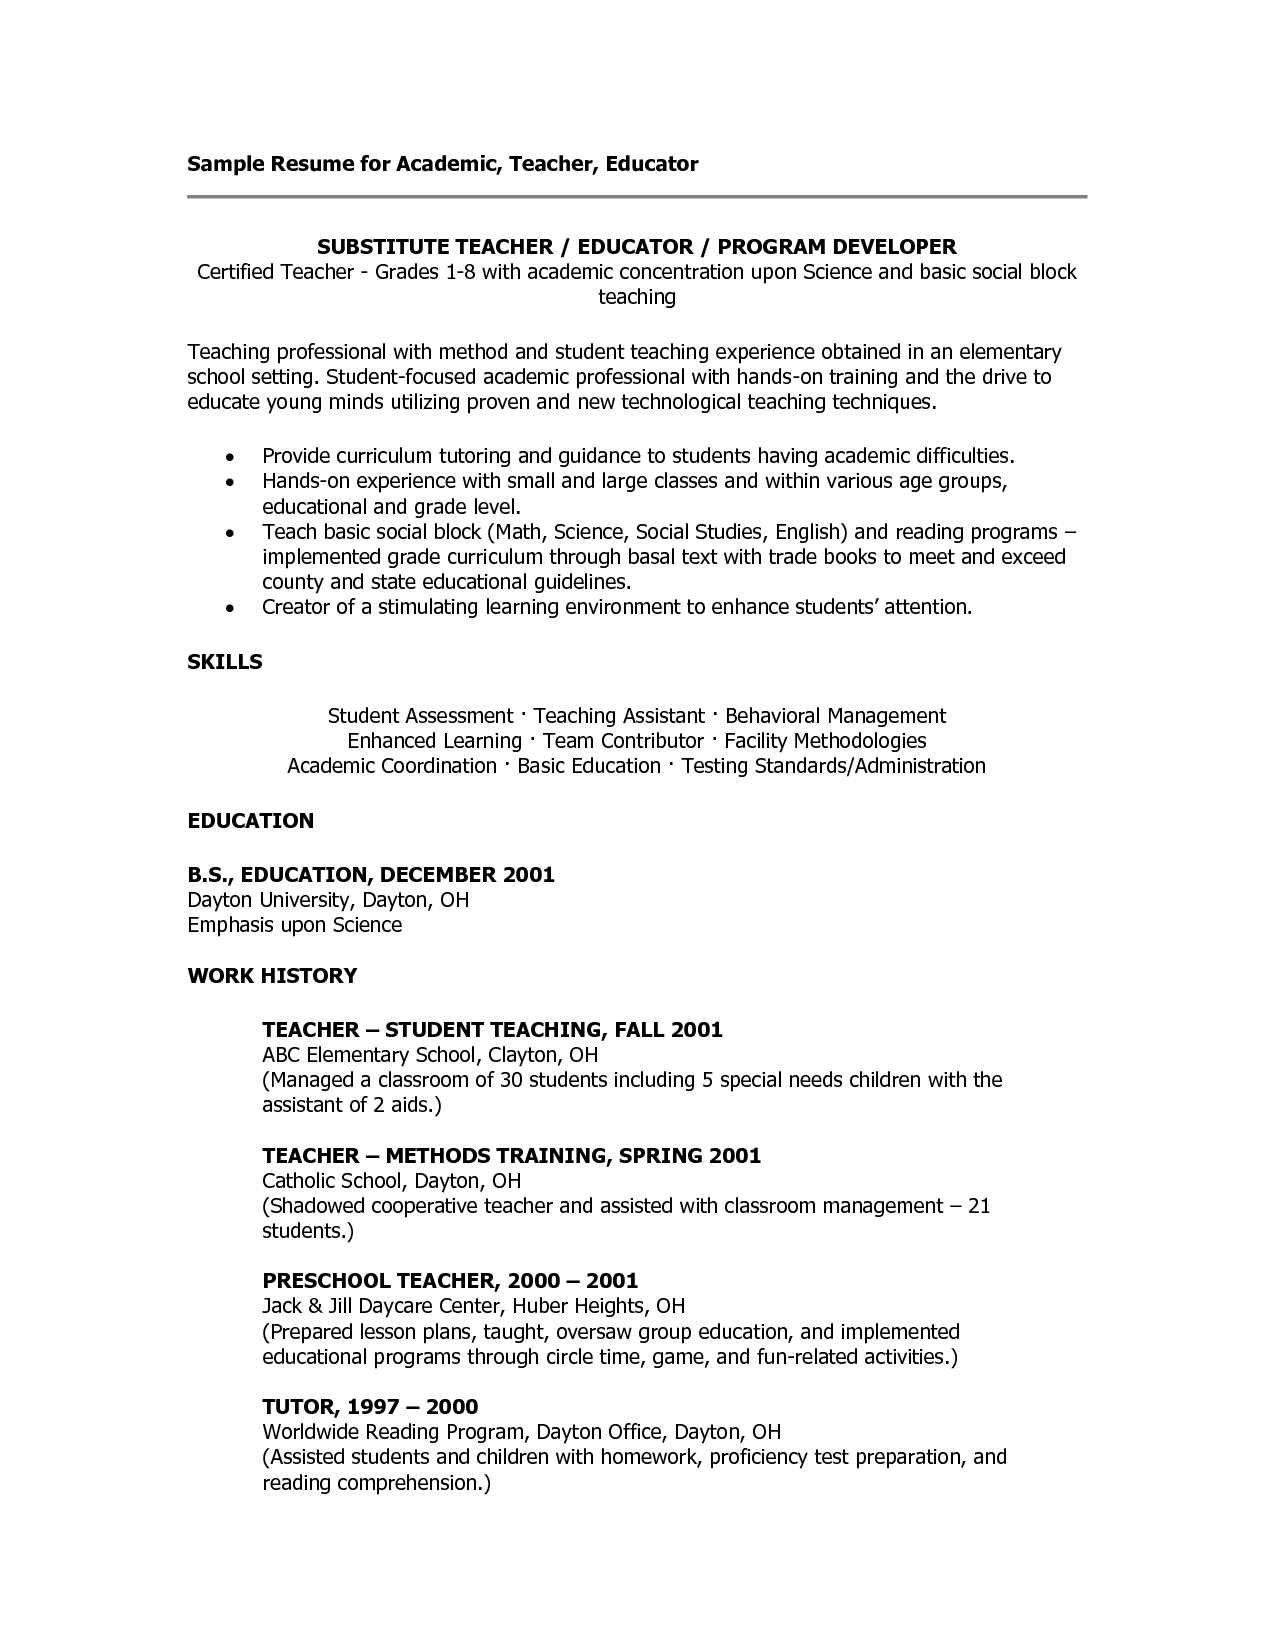 Education On Resume Examples Sample Teacher Resumes  Substitute Teacher Resume  Fcs